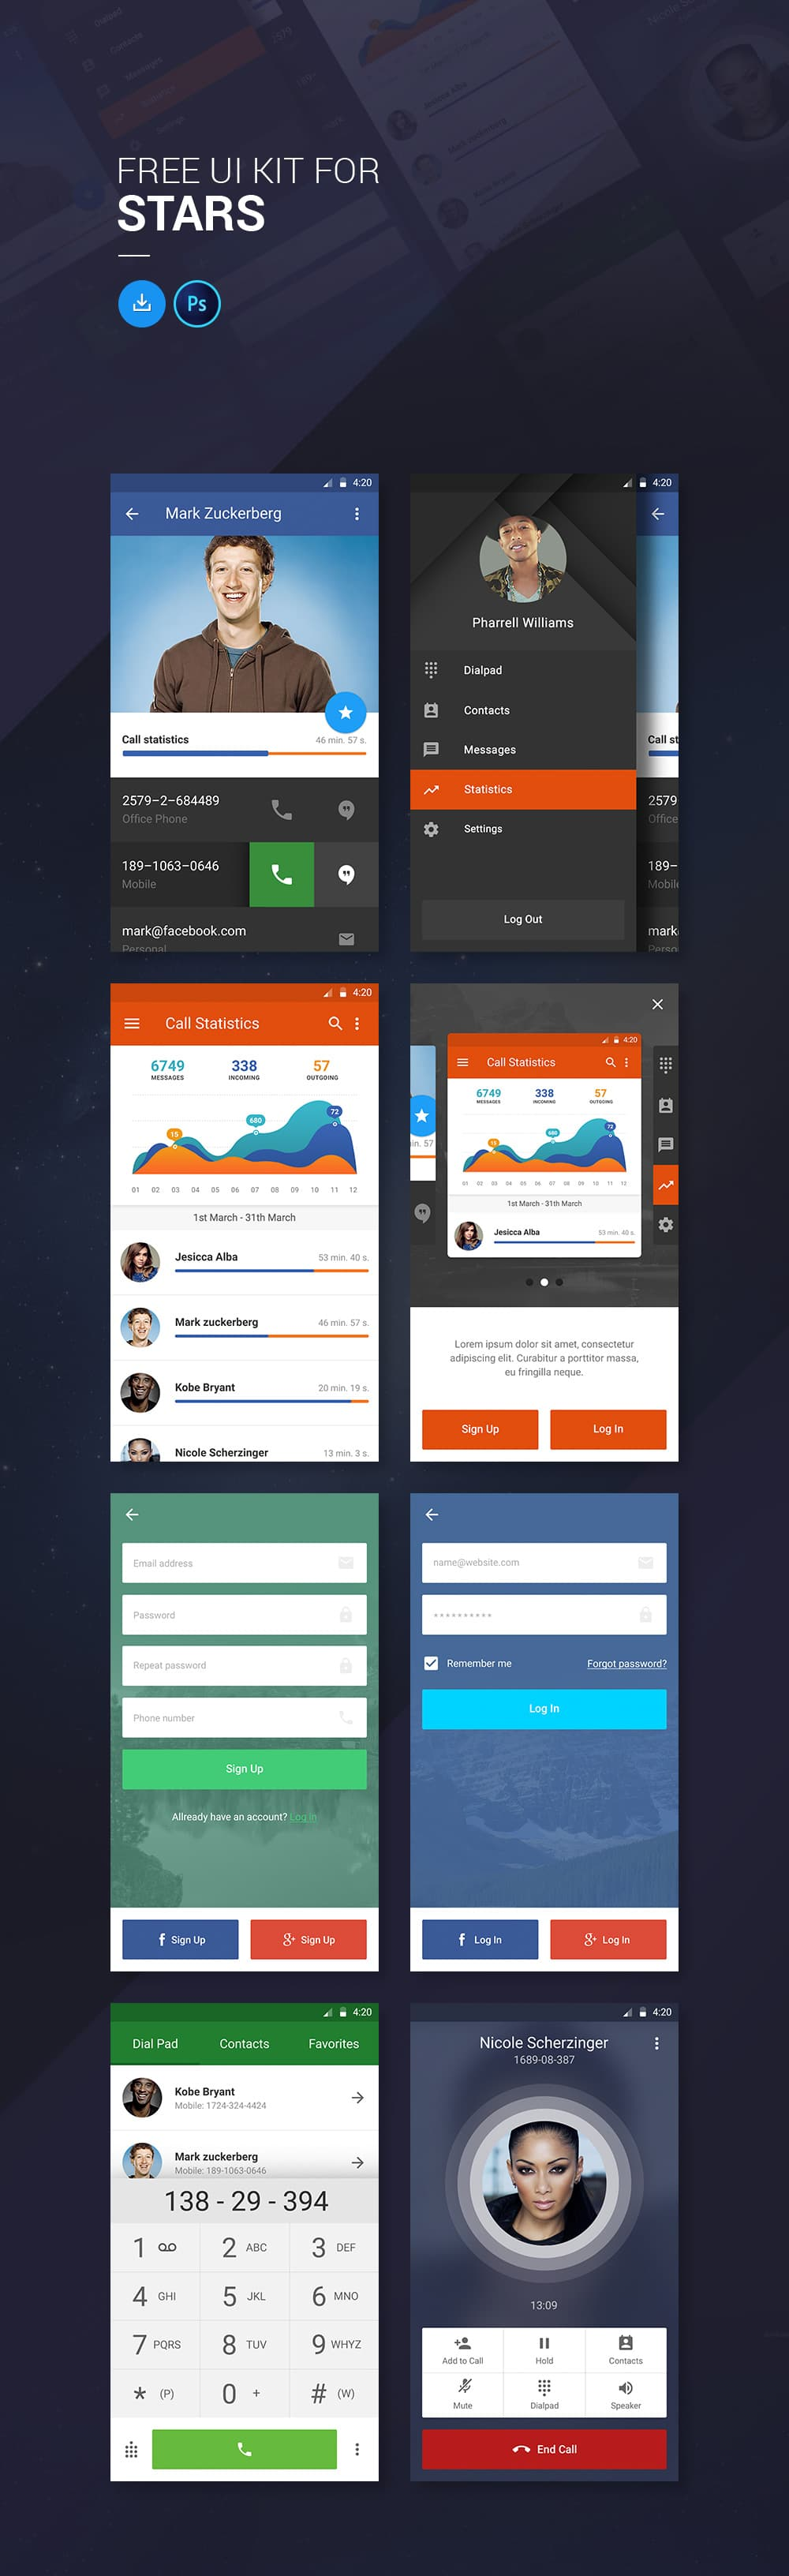 Free Ui Kit For Stars